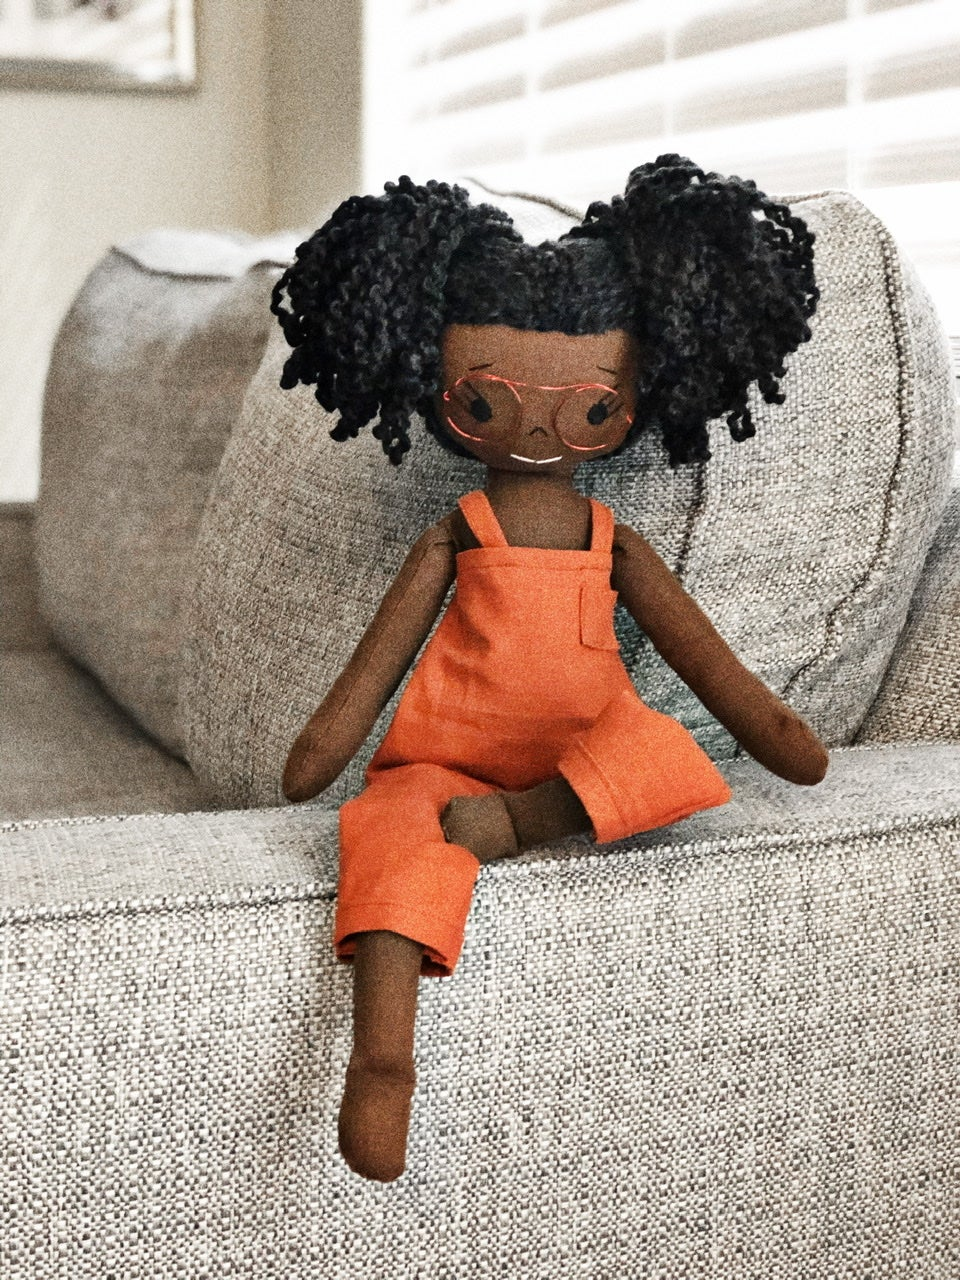 Black-Owned Brands and small shops Harperiman Dolls